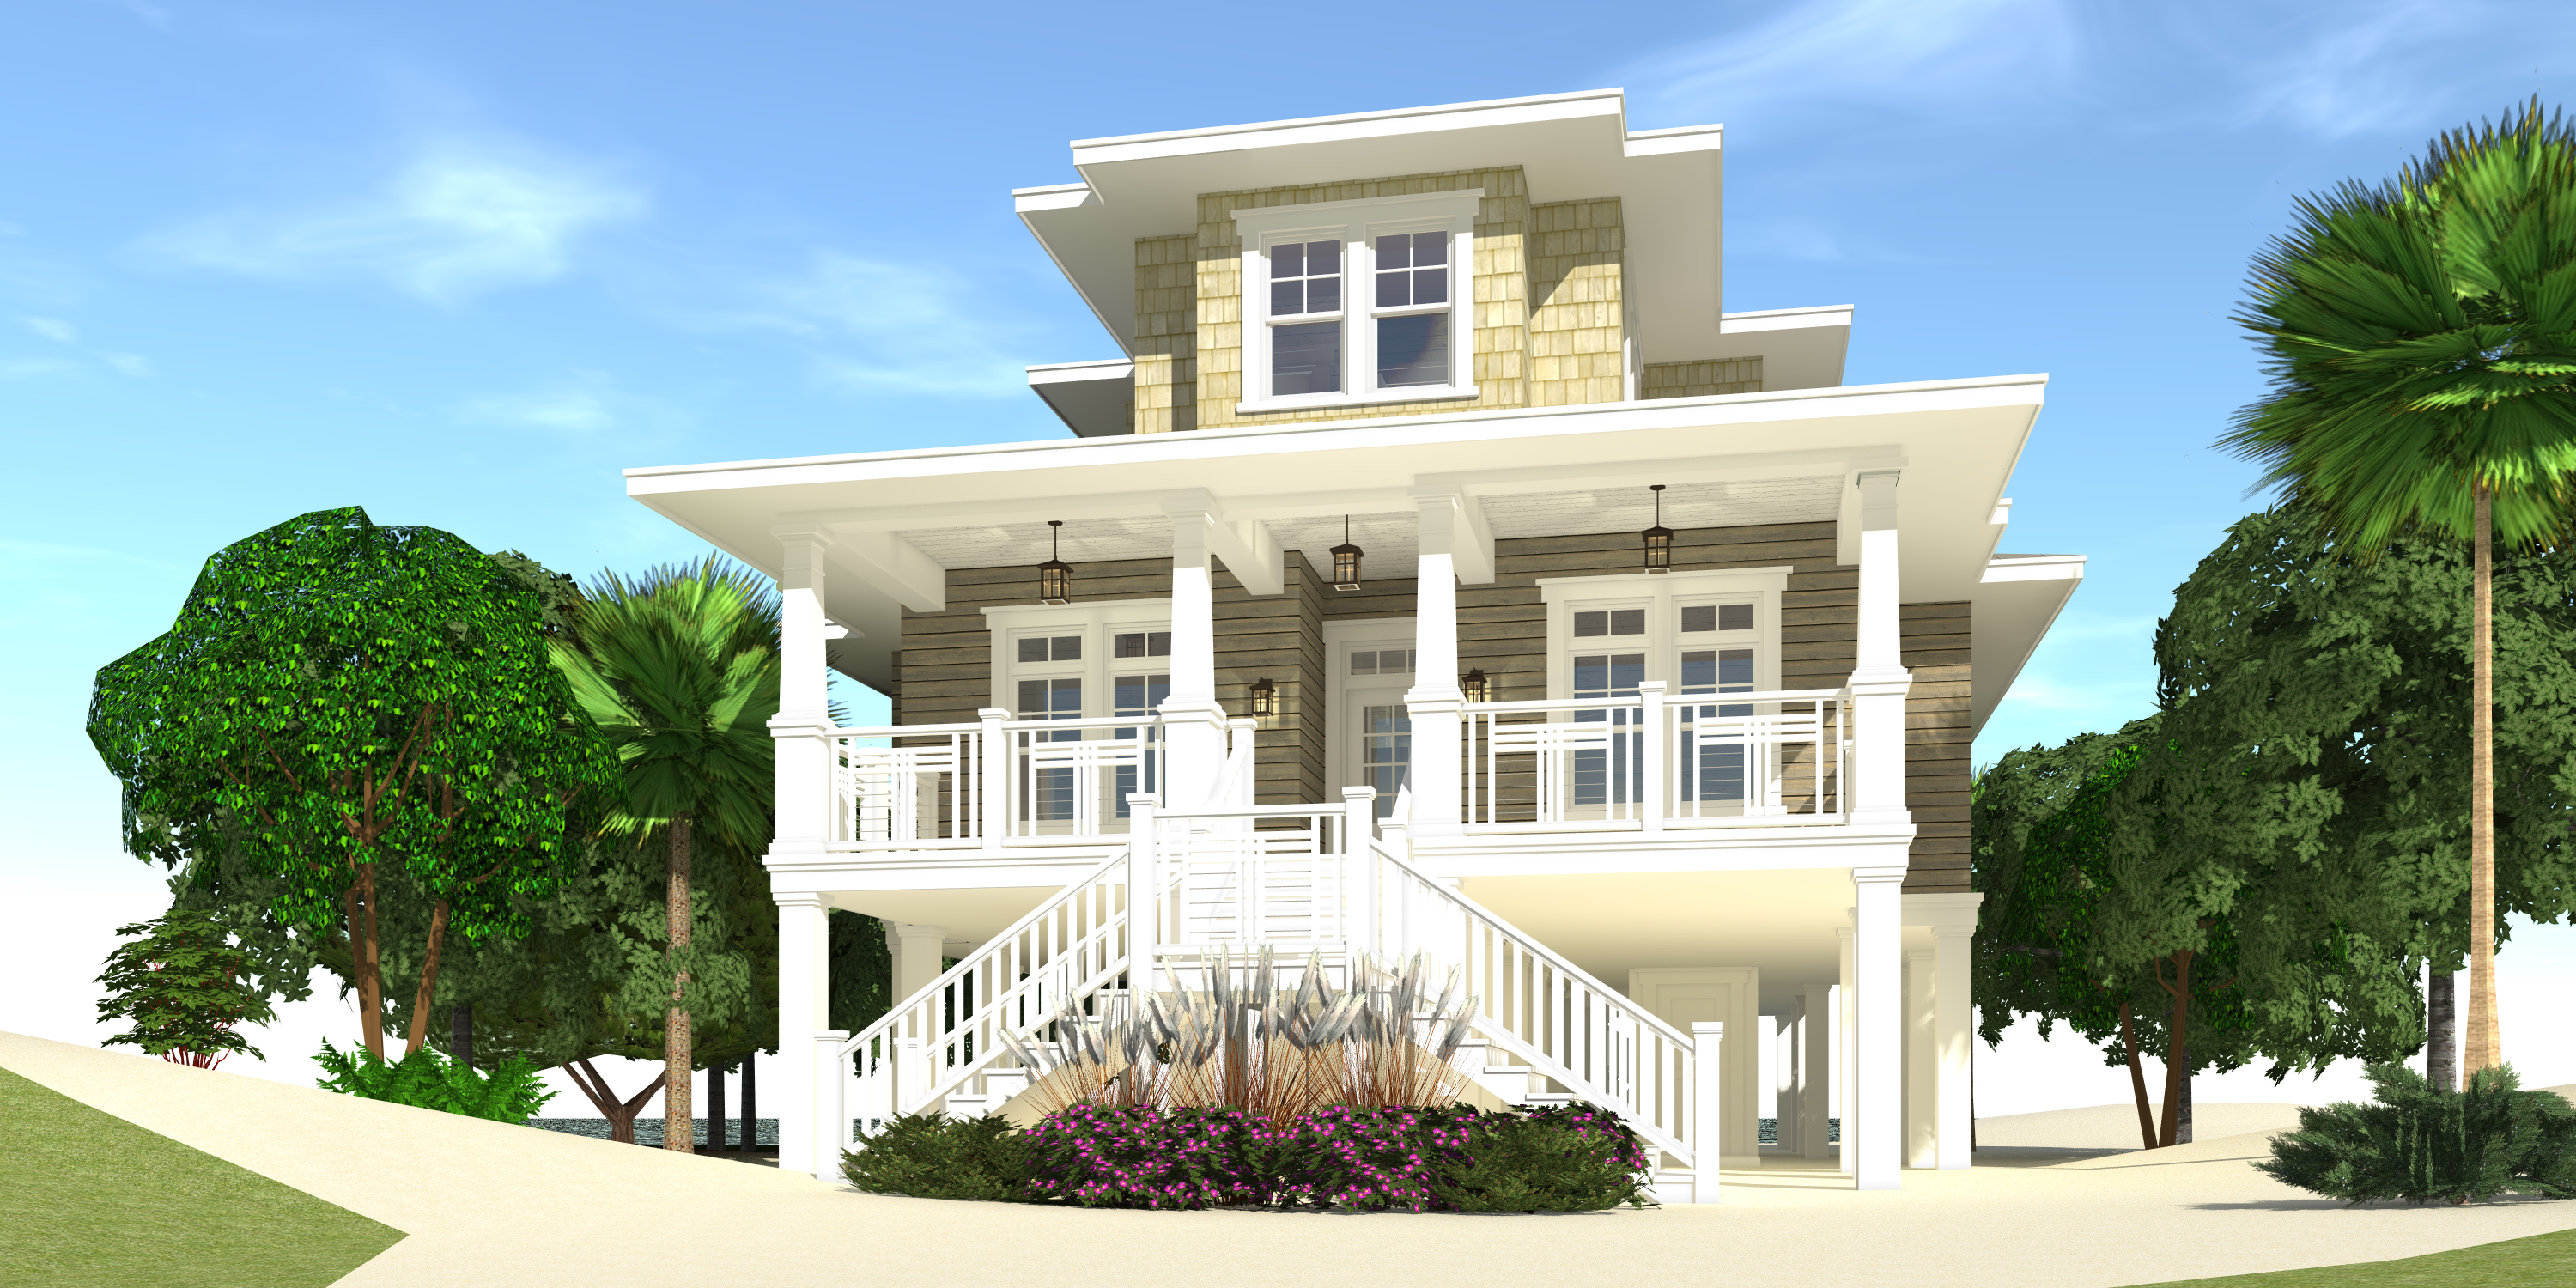 Fenton house plan tyree house plans for Beachside home designs